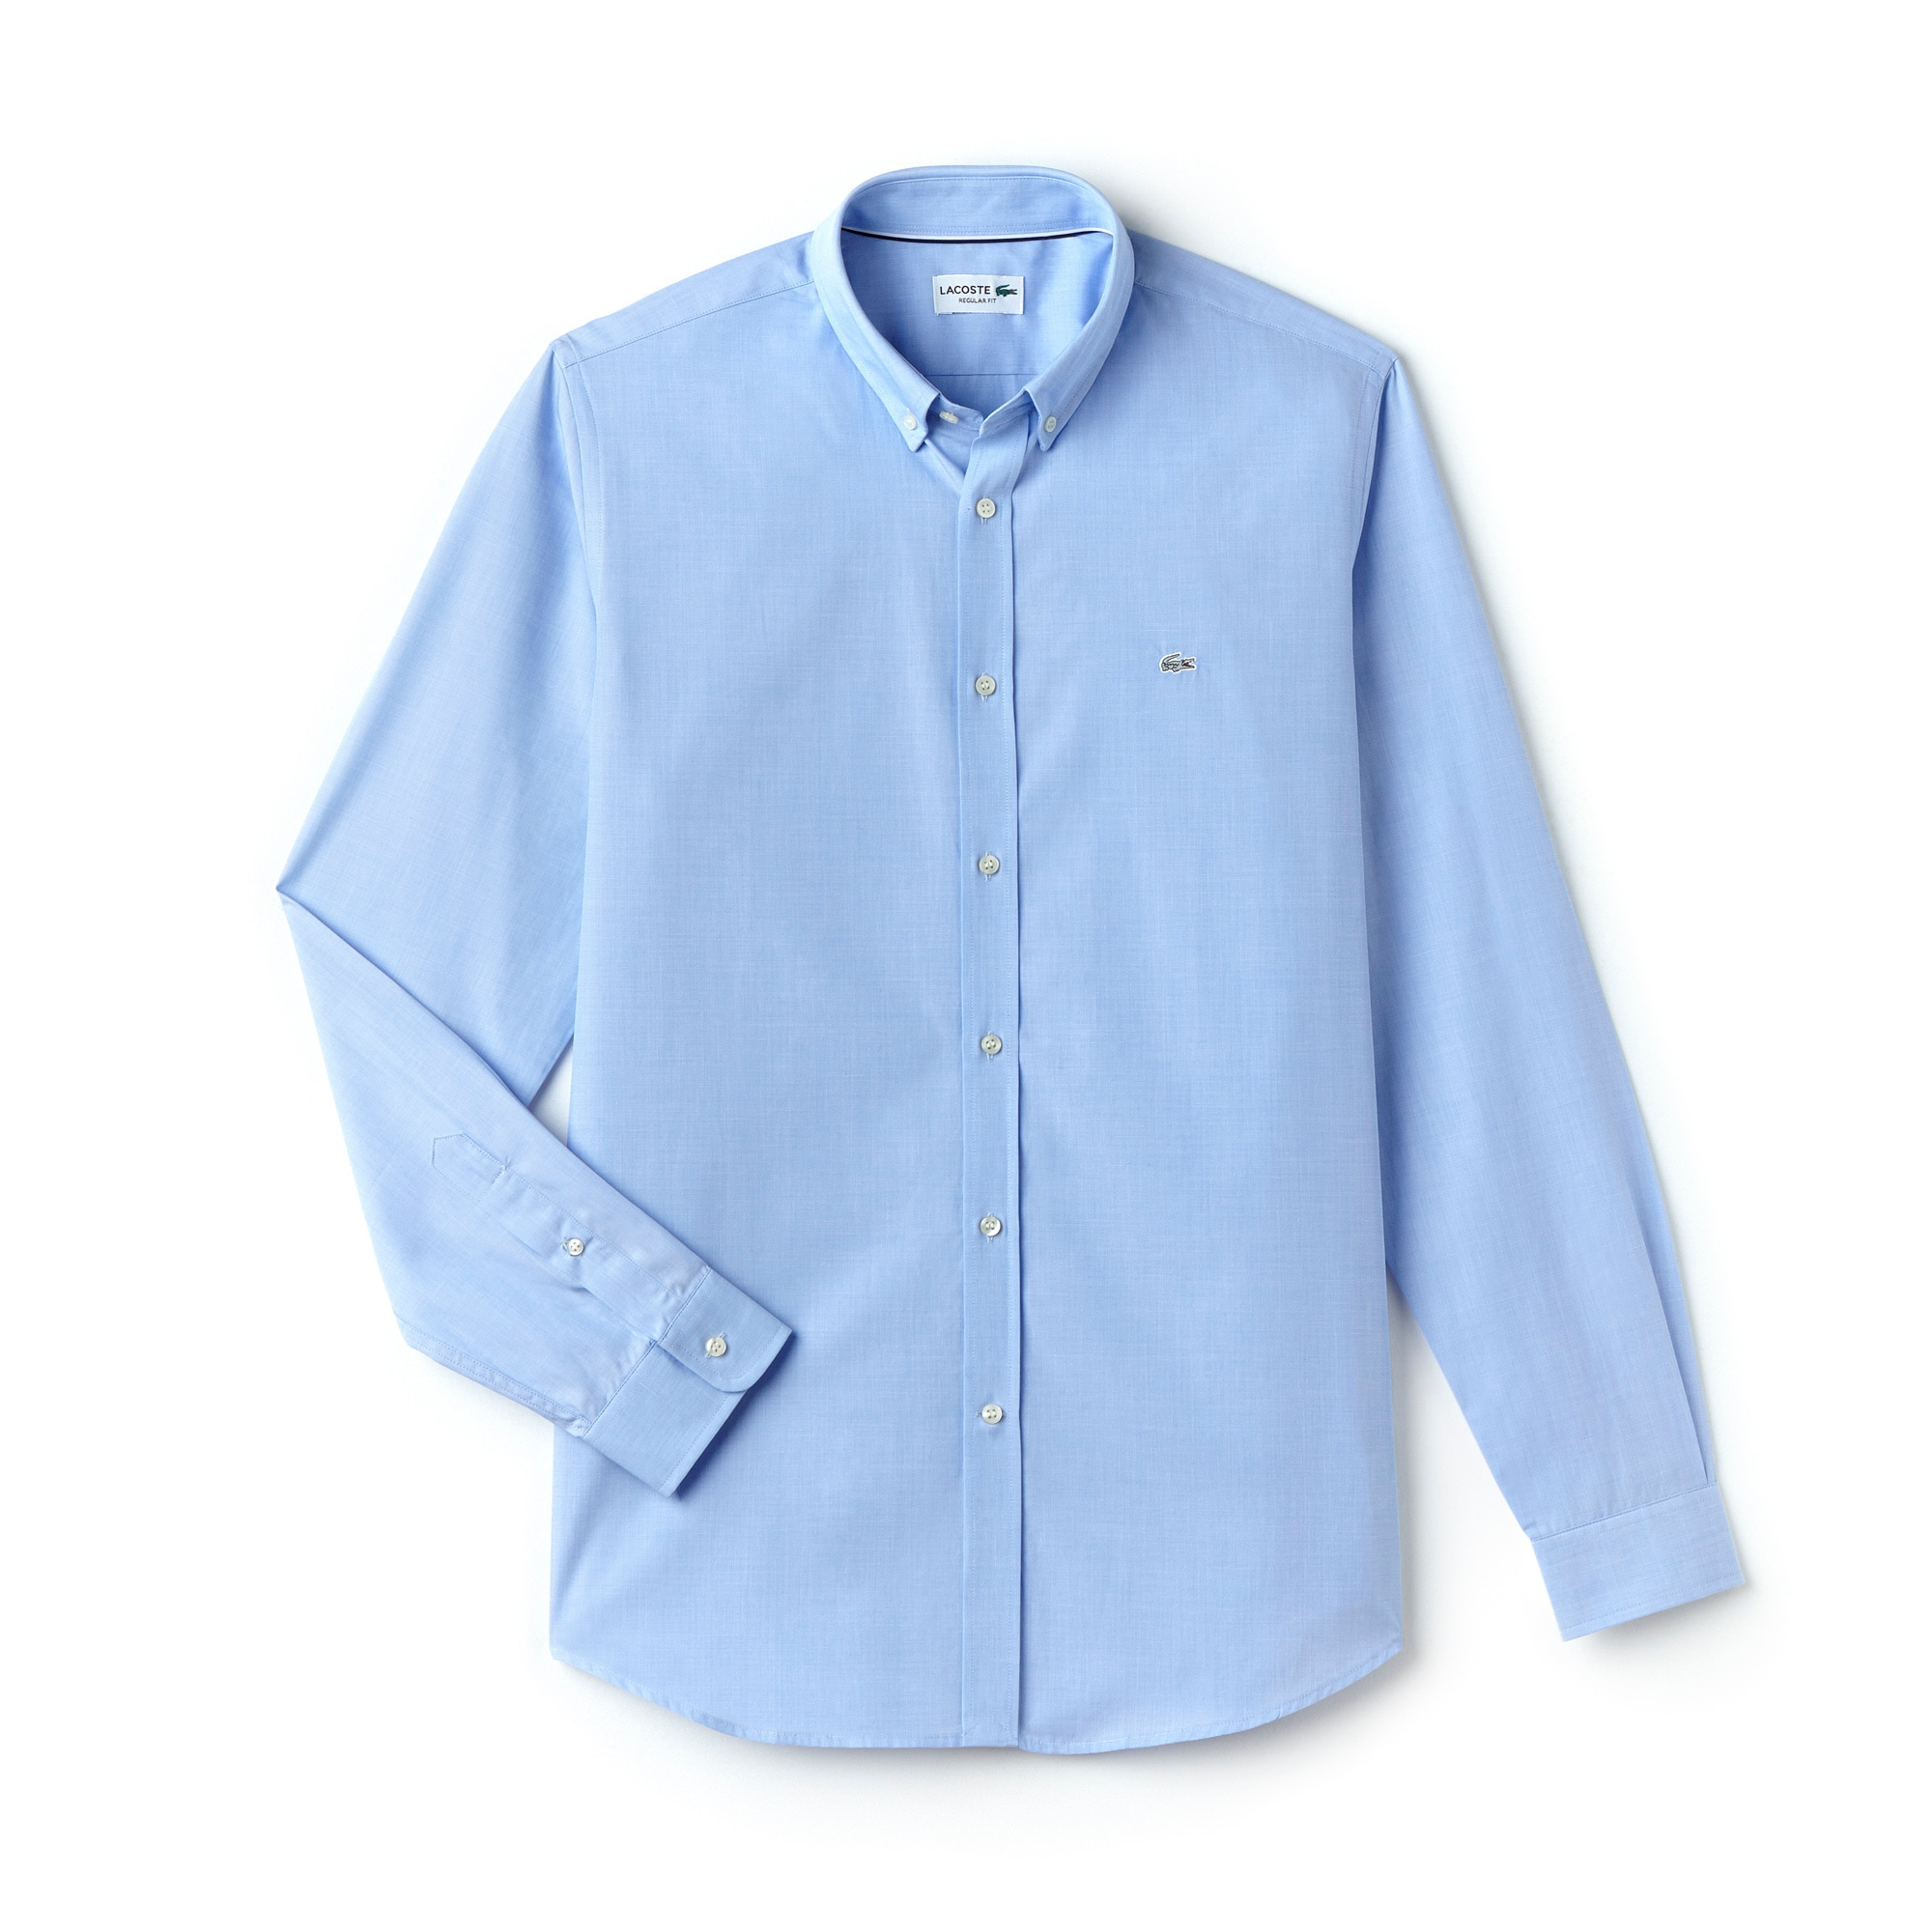 Men's Button Down Woven Shirt